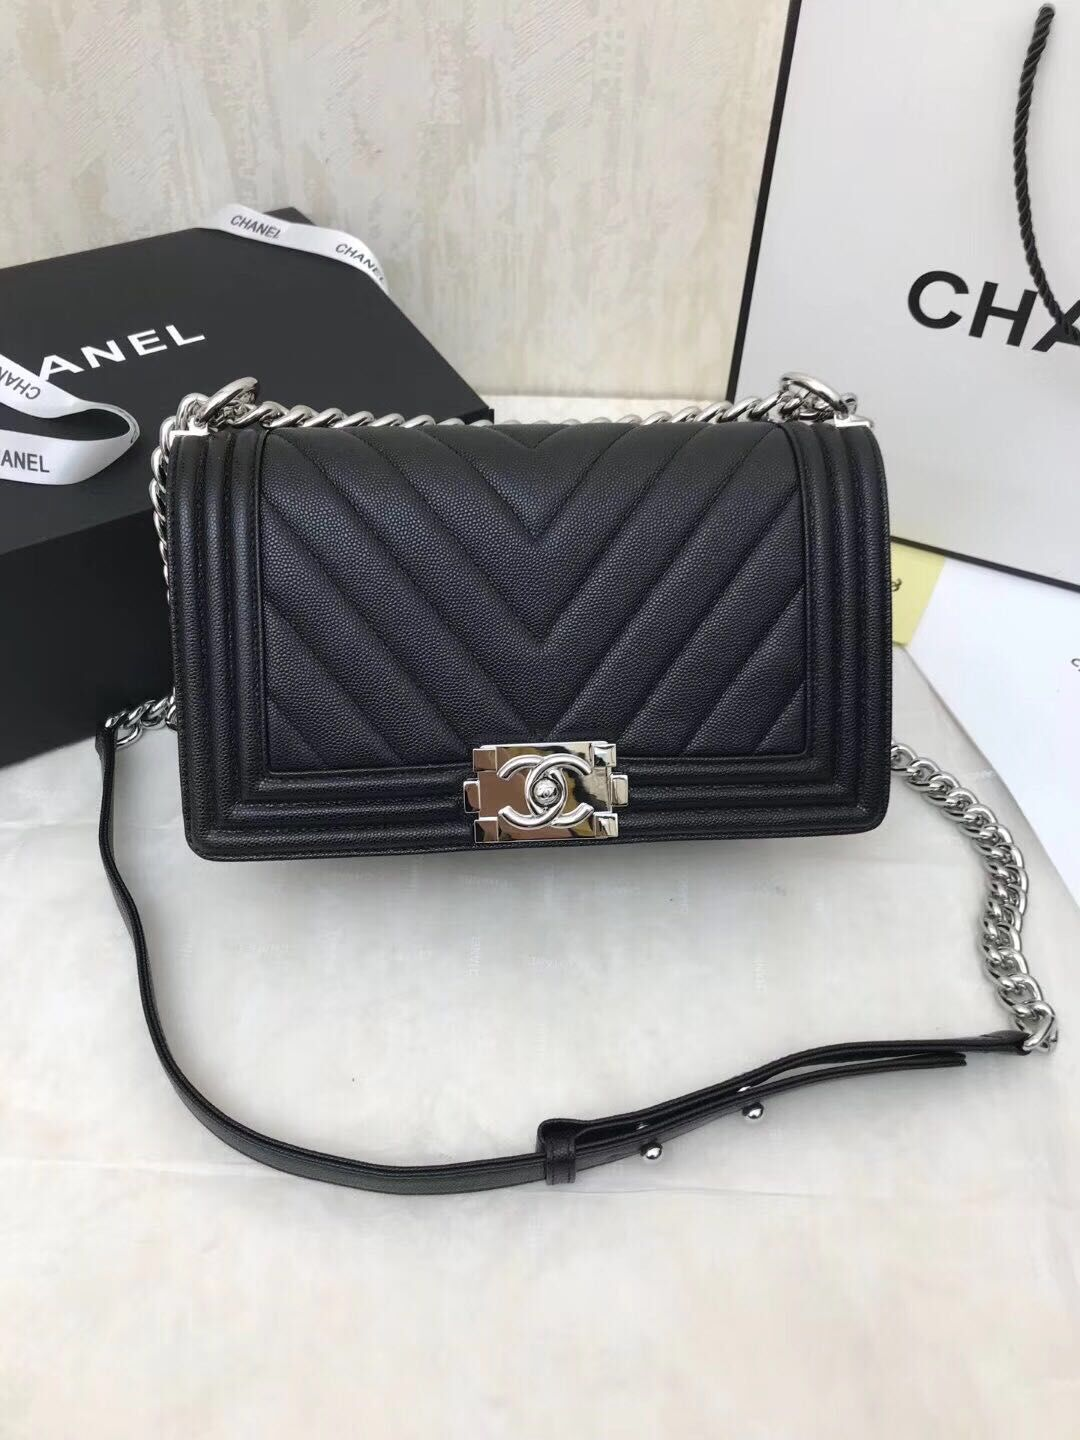 Chanel Boy Flap Caviar Original V Leather Shoulder Black Bag A67086 Silver